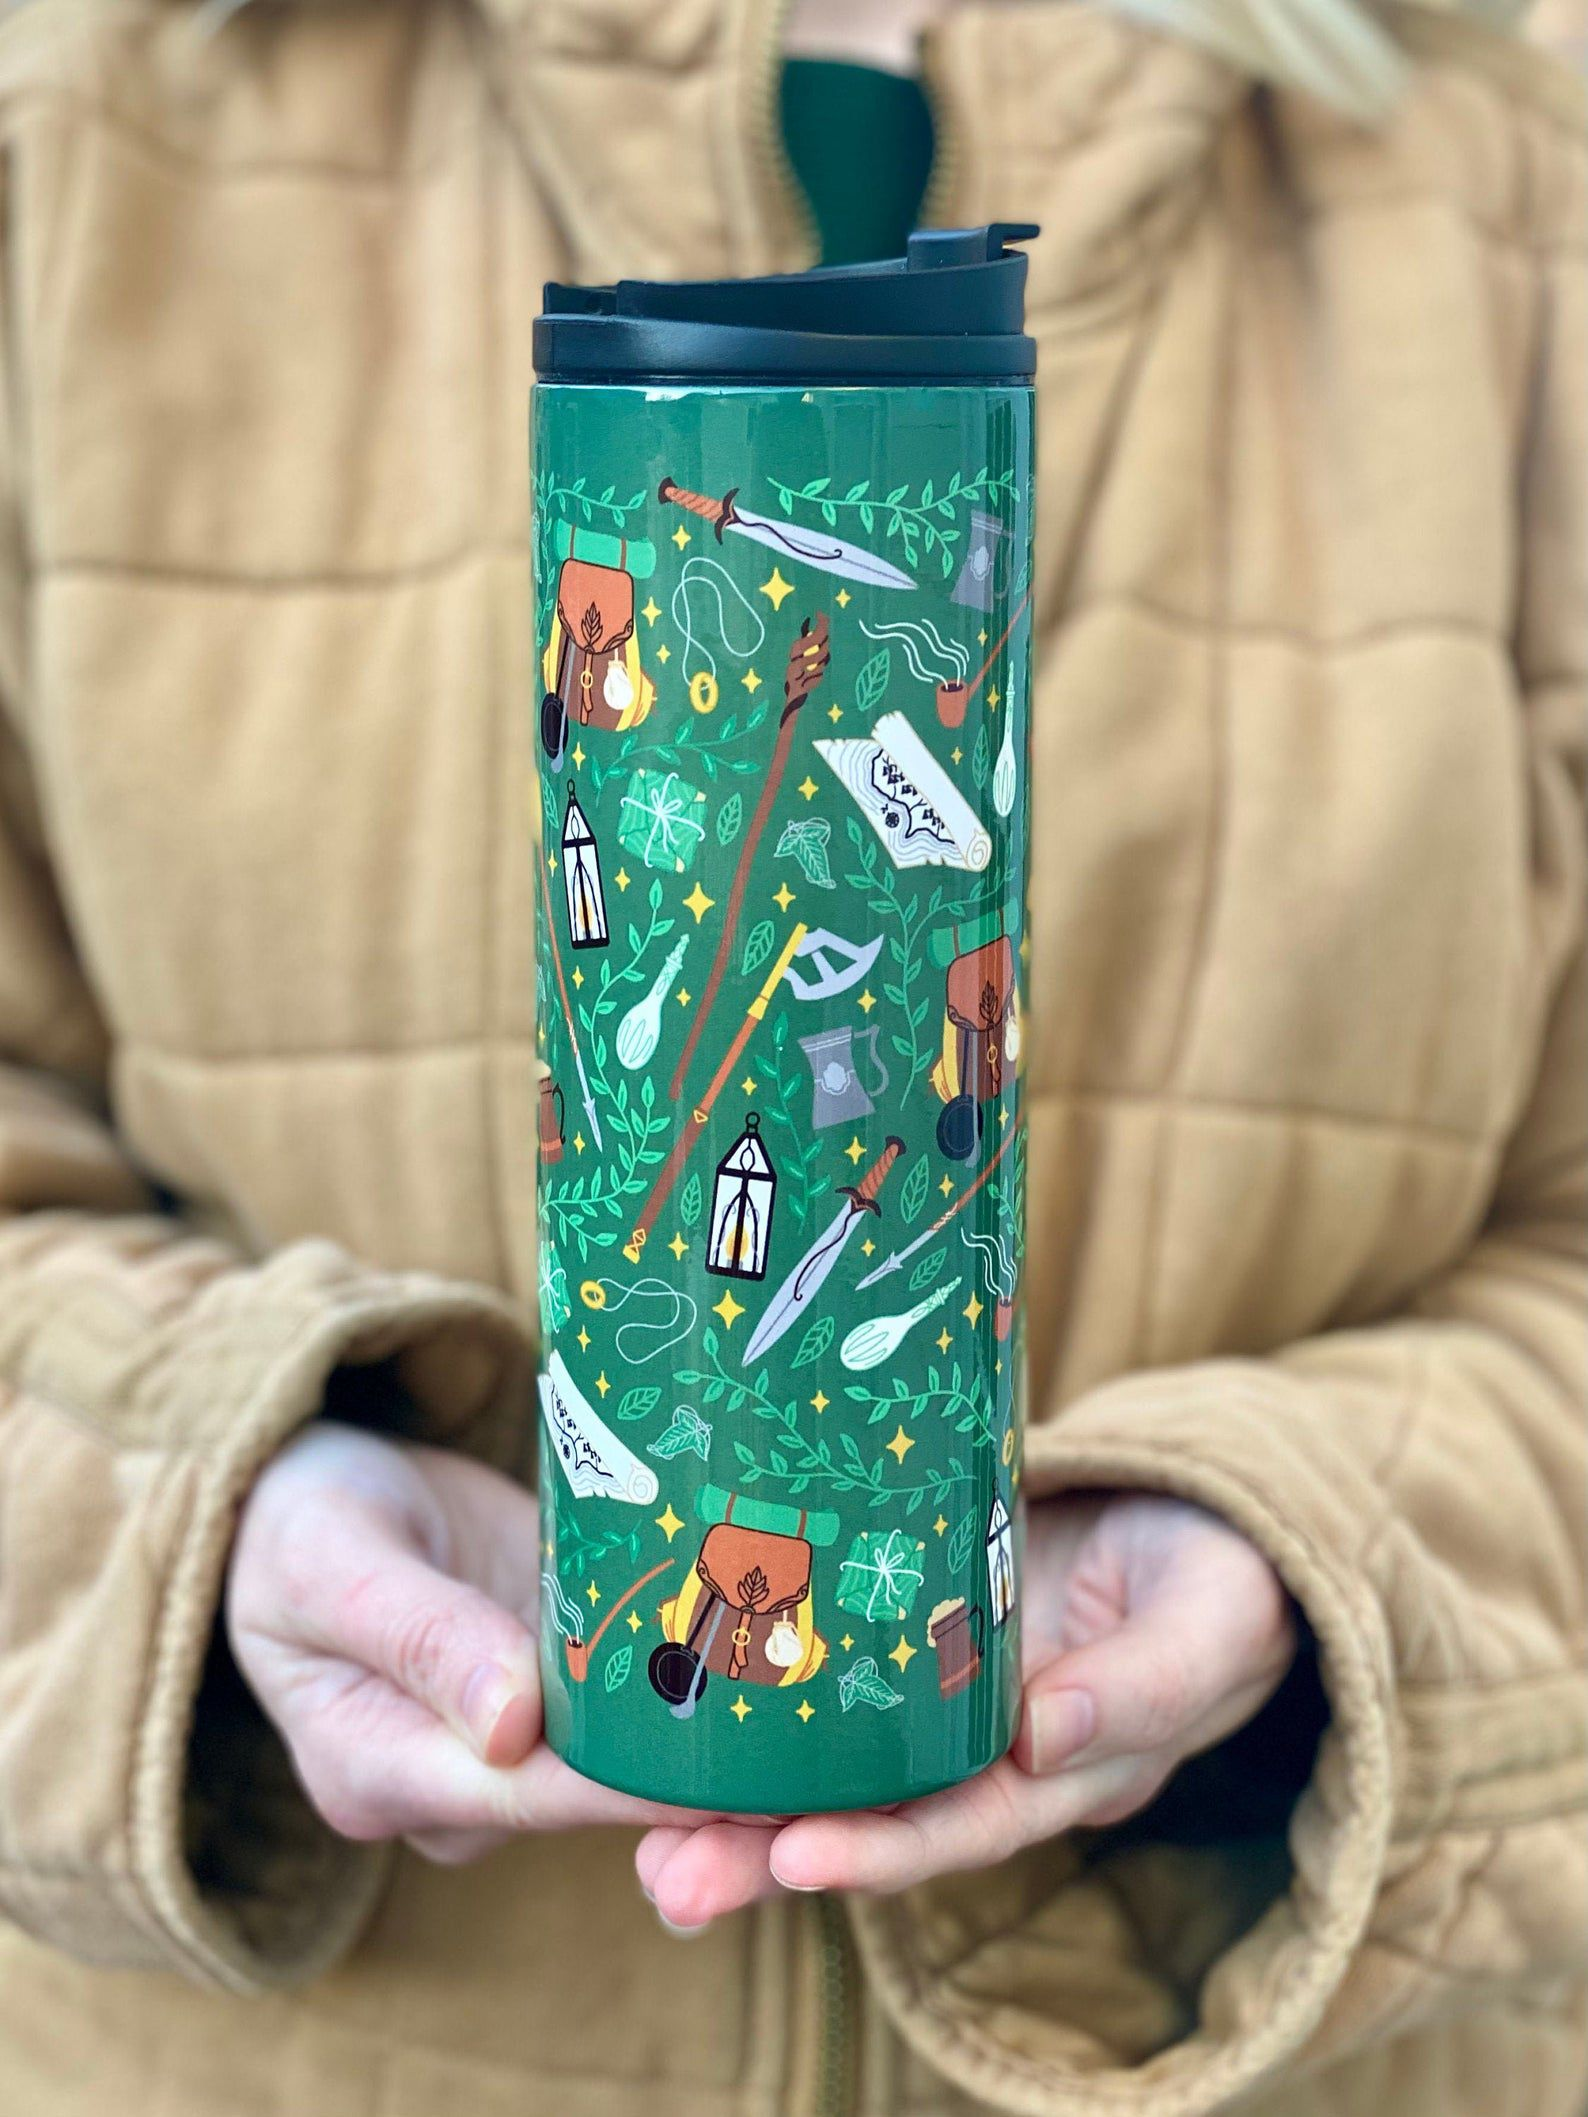 A person holding a tumble in their hands. The tumbler is green with a pattern of leaves, swords, backbacks, and weapons.